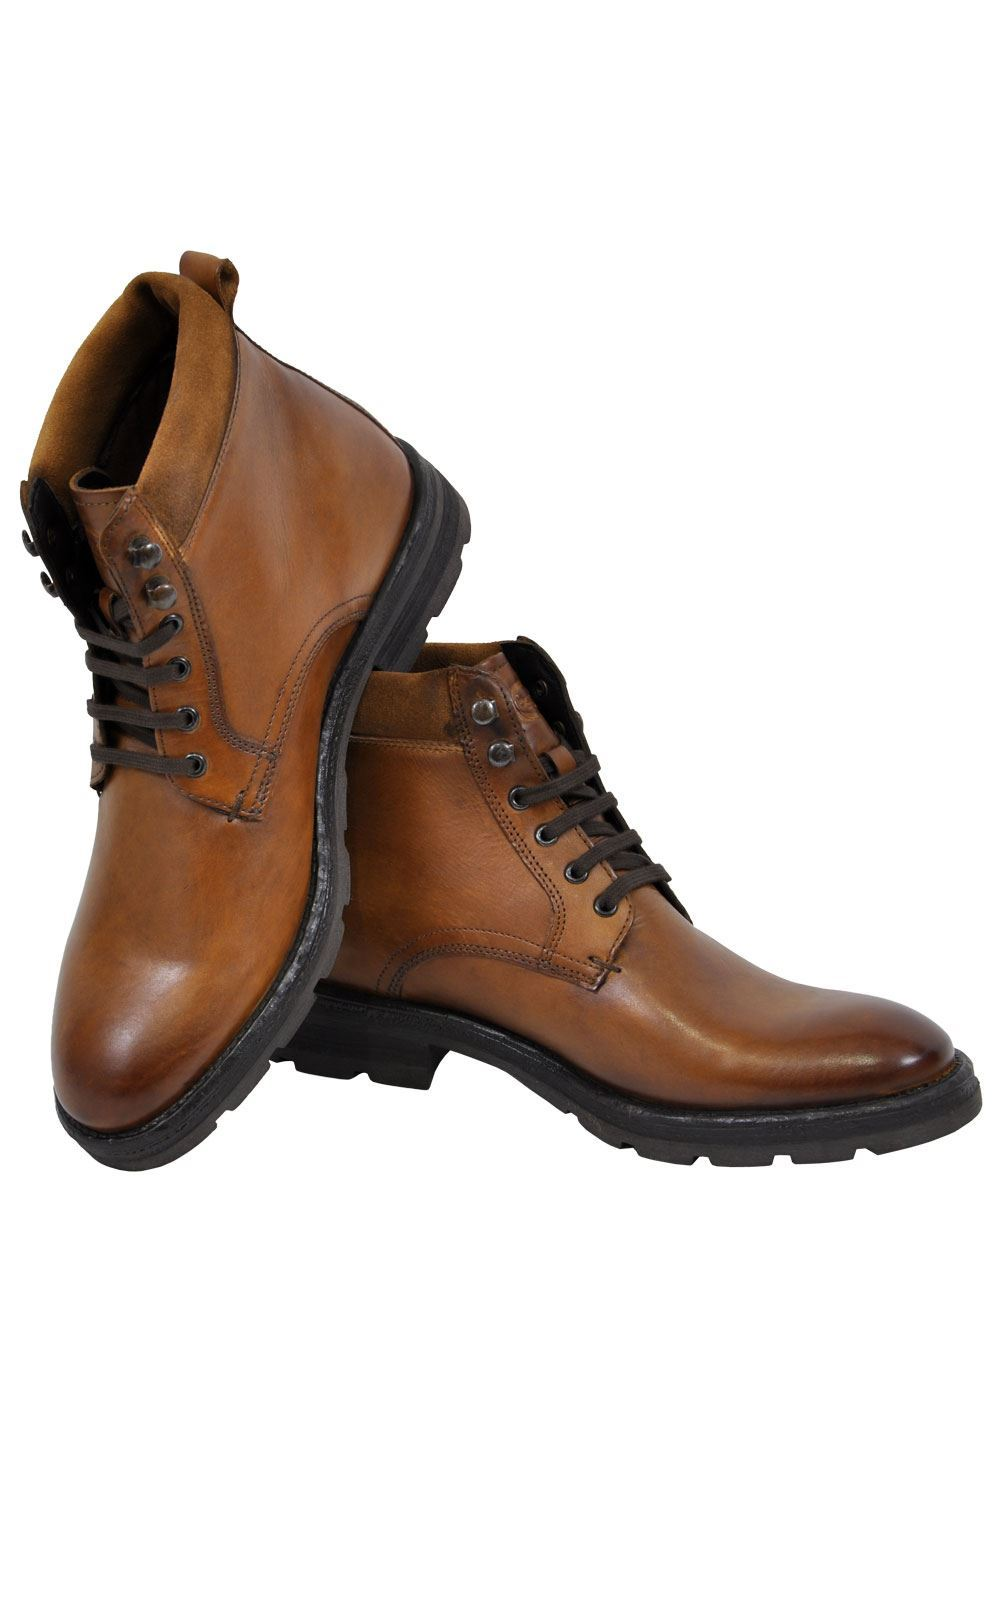 42ad2b1a8d3 Base London Boots Panzer Washed